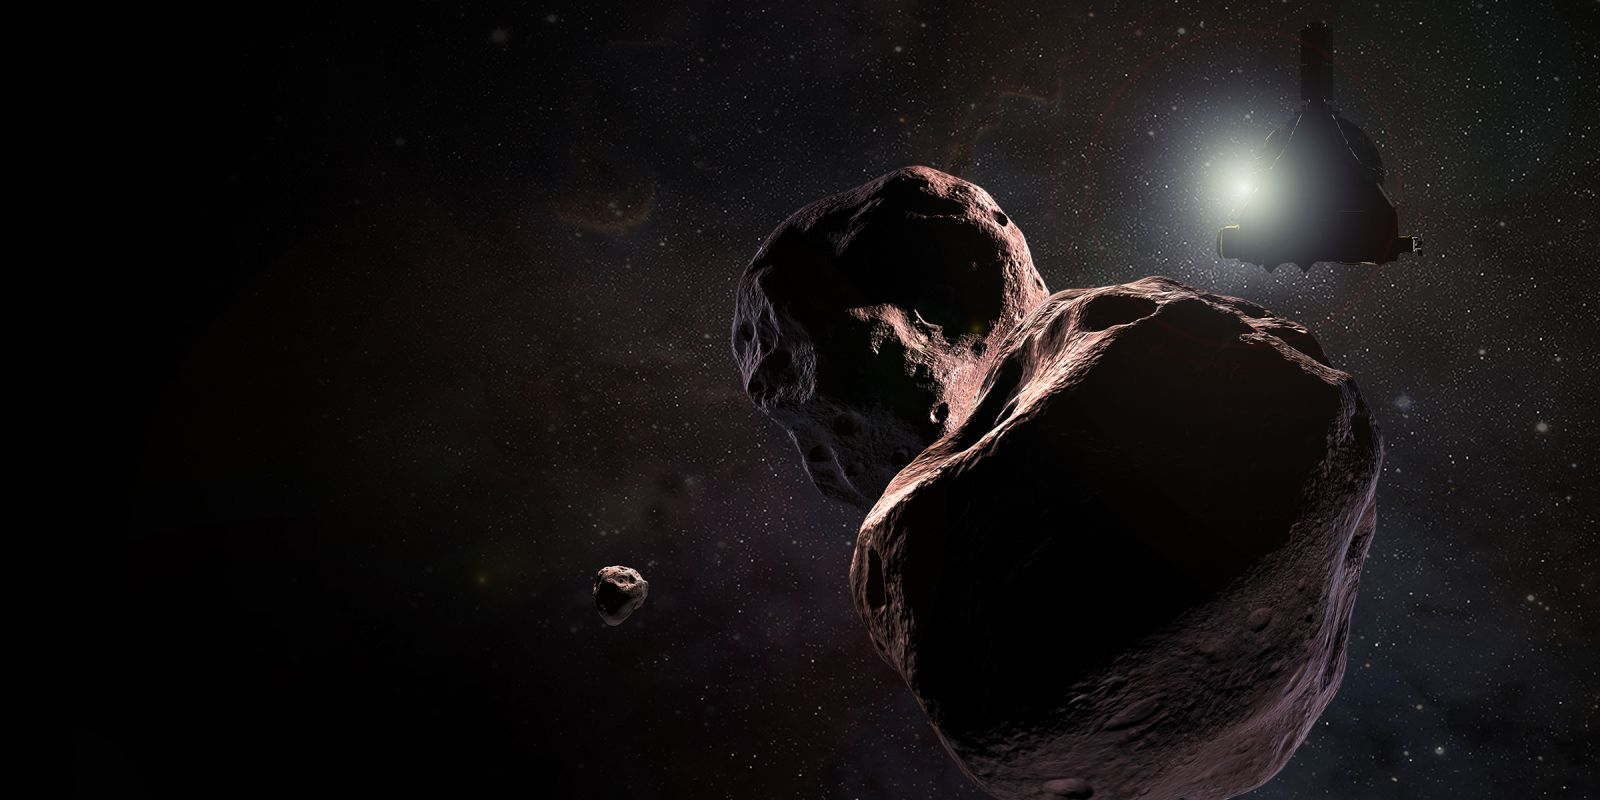 An illustration of NASA's New Horizons spacecraft encountering the Kuiper Belt object nicknamed Ultima Thule on Jan. 1, 2019. Image and Caption Credit: NASA/JHUAPL/SWRI